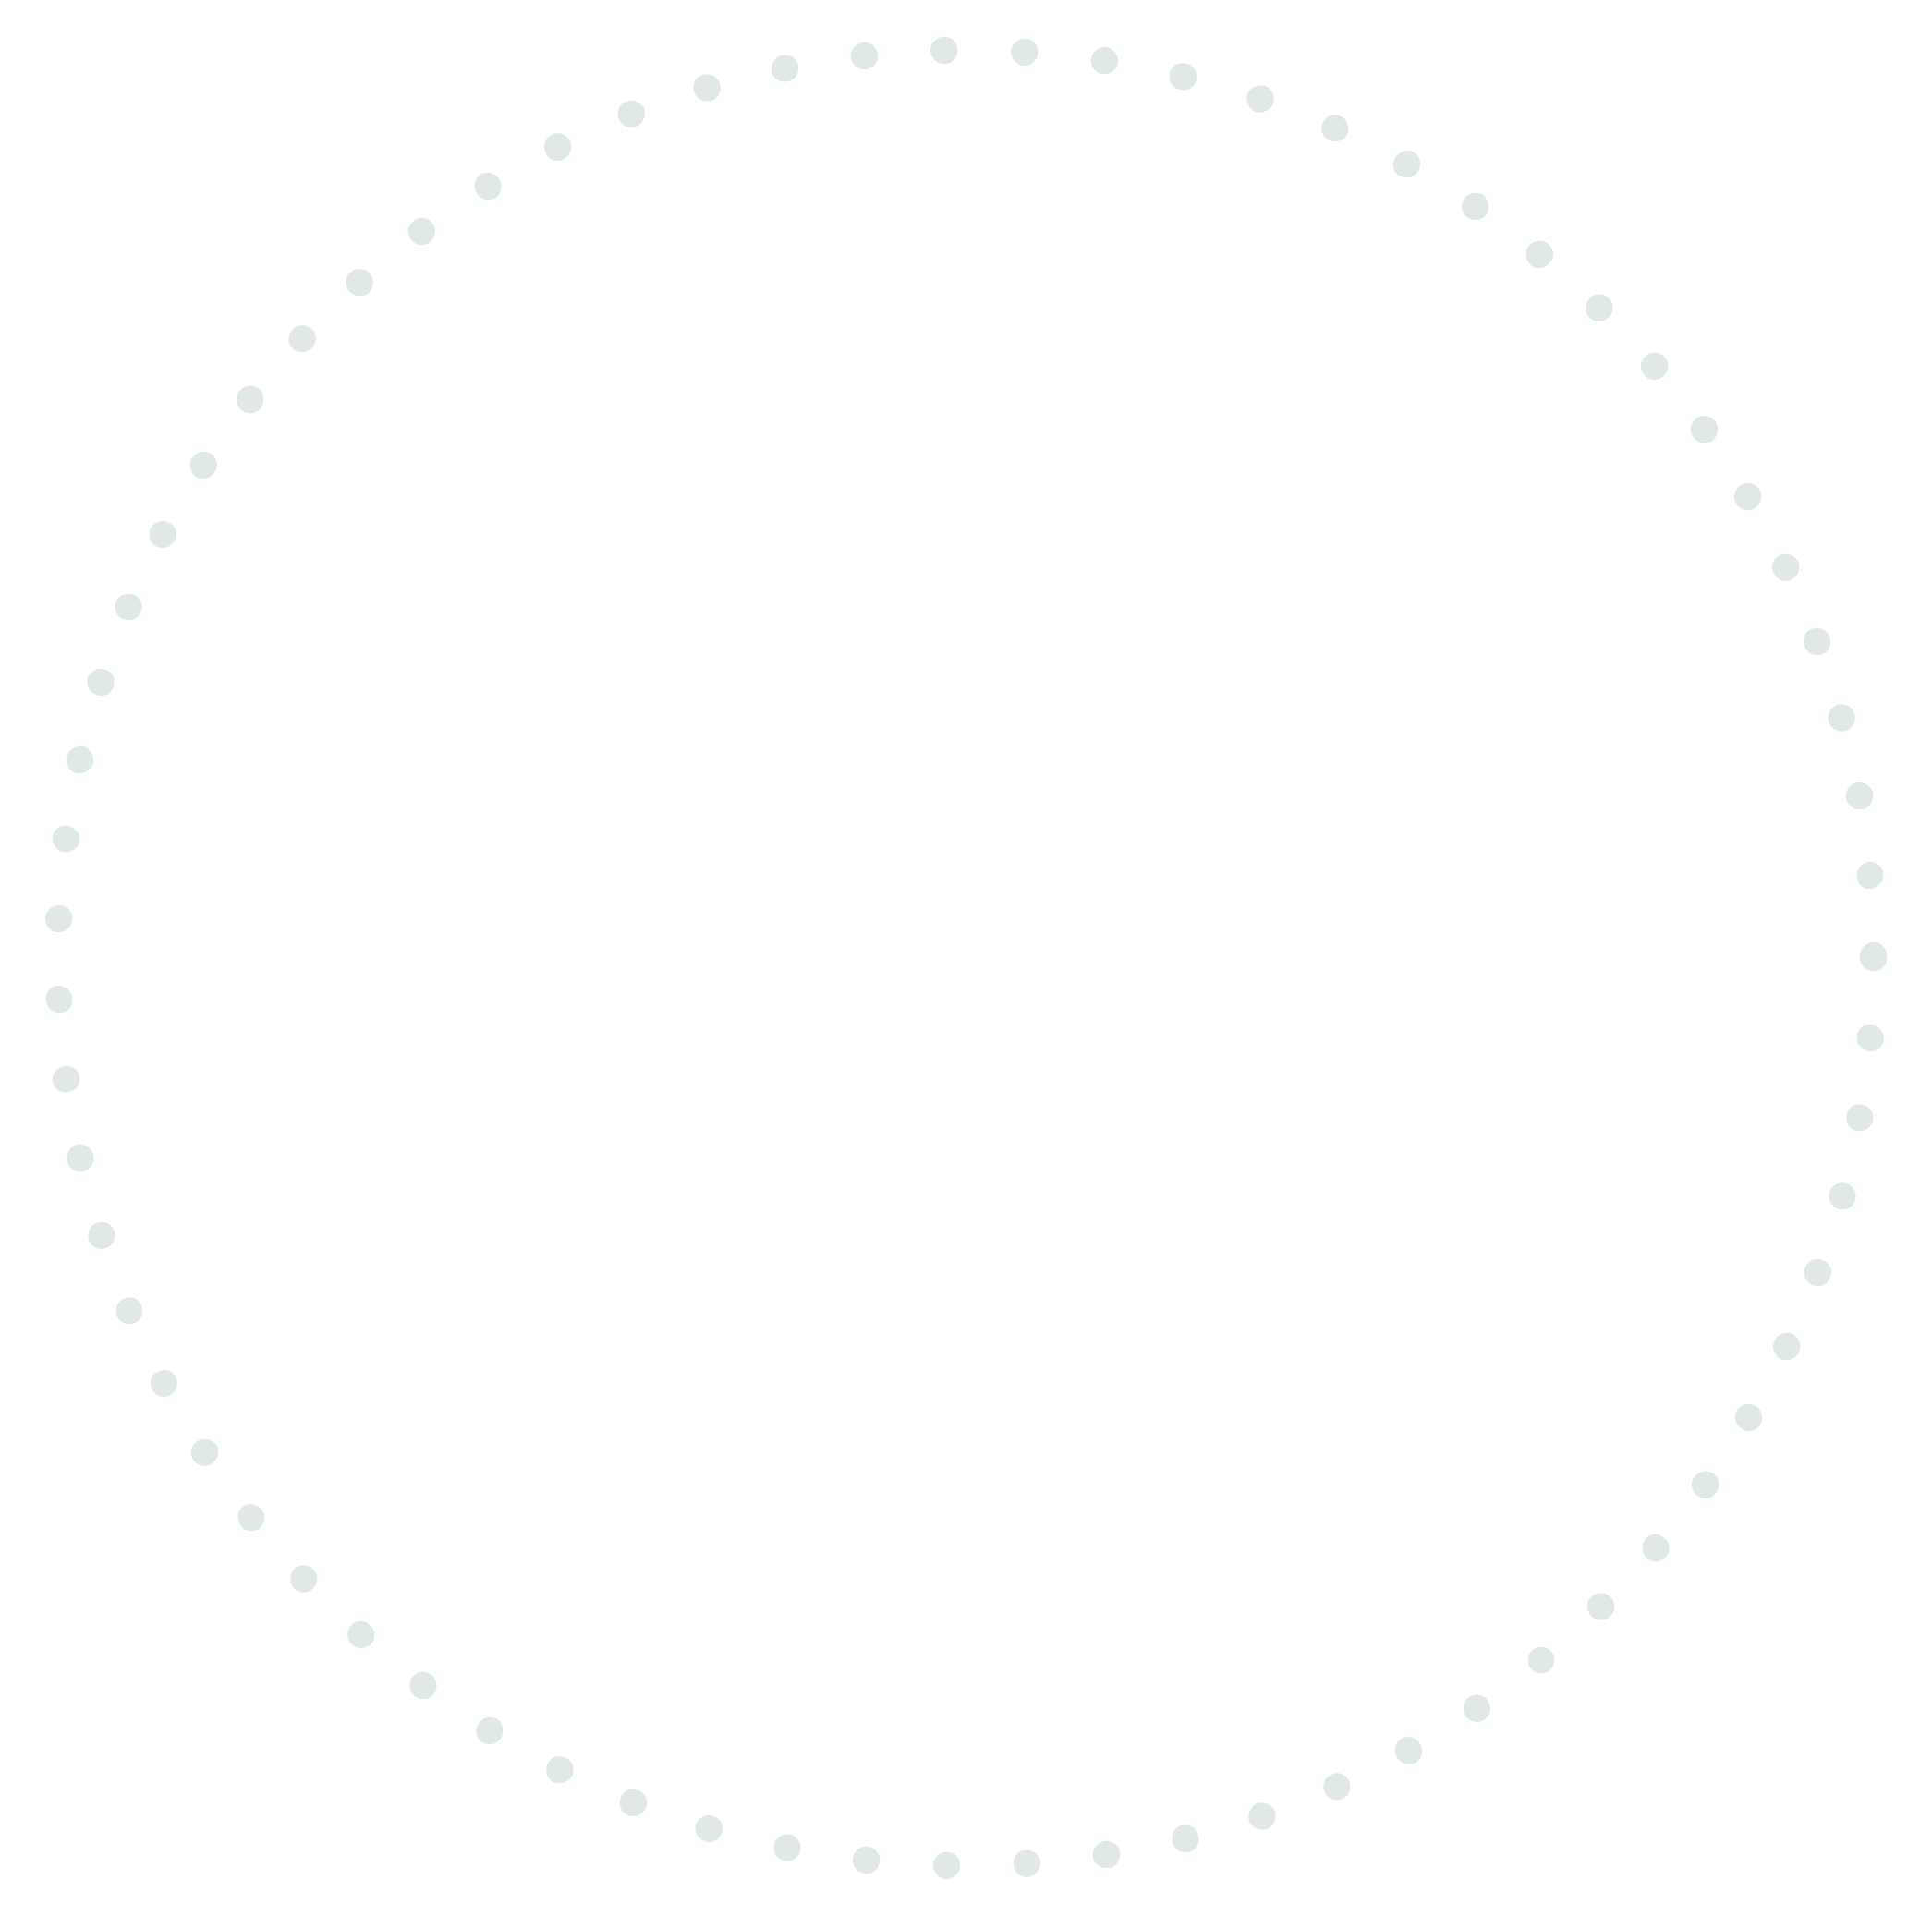 One dotted circle Strategy Banner-03.png